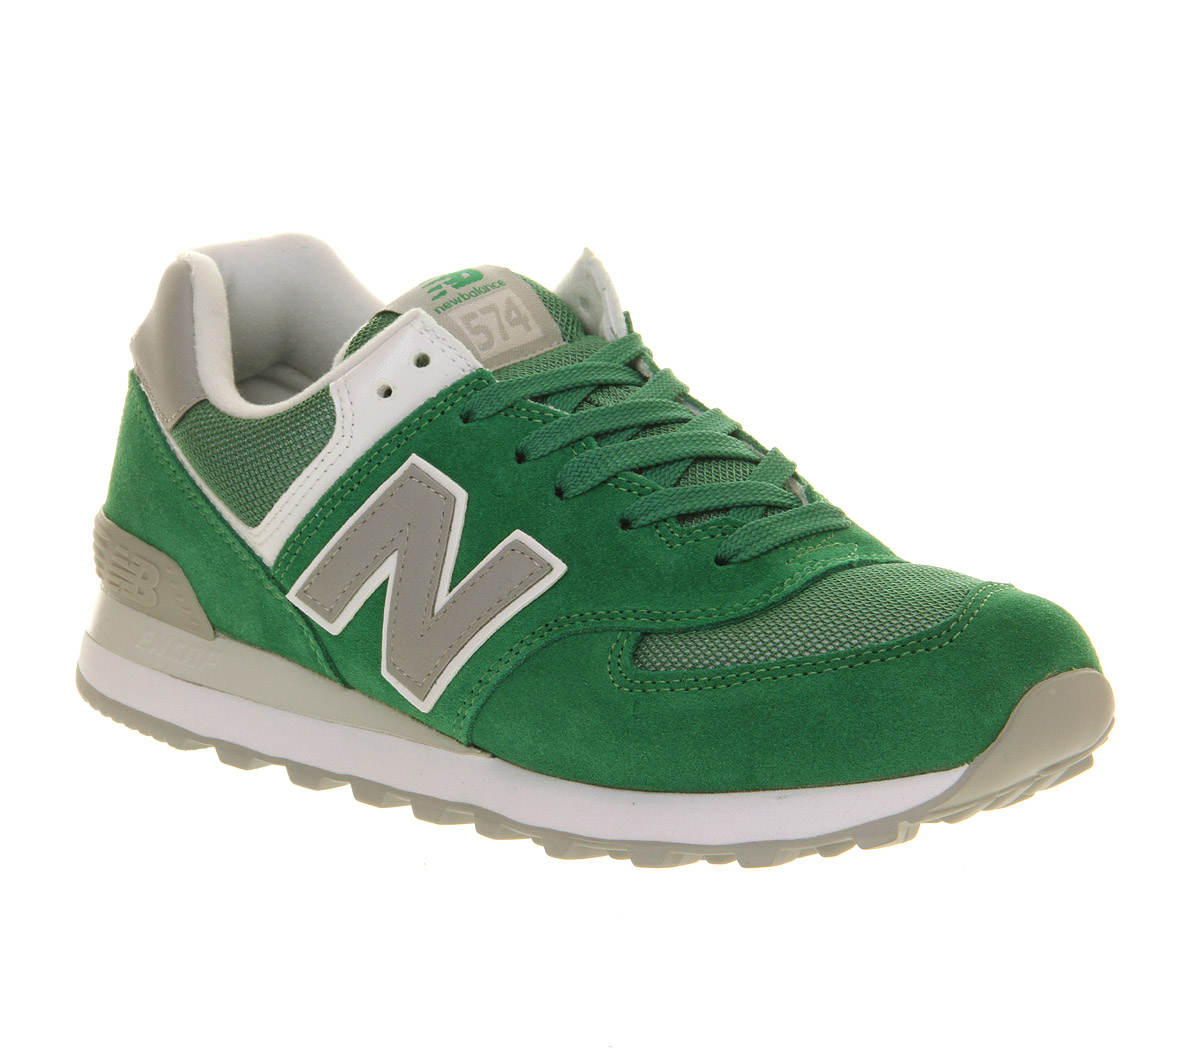 new balance new balance m574 green grey trainers shoes ebay. Black Bedroom Furniture Sets. Home Design Ideas